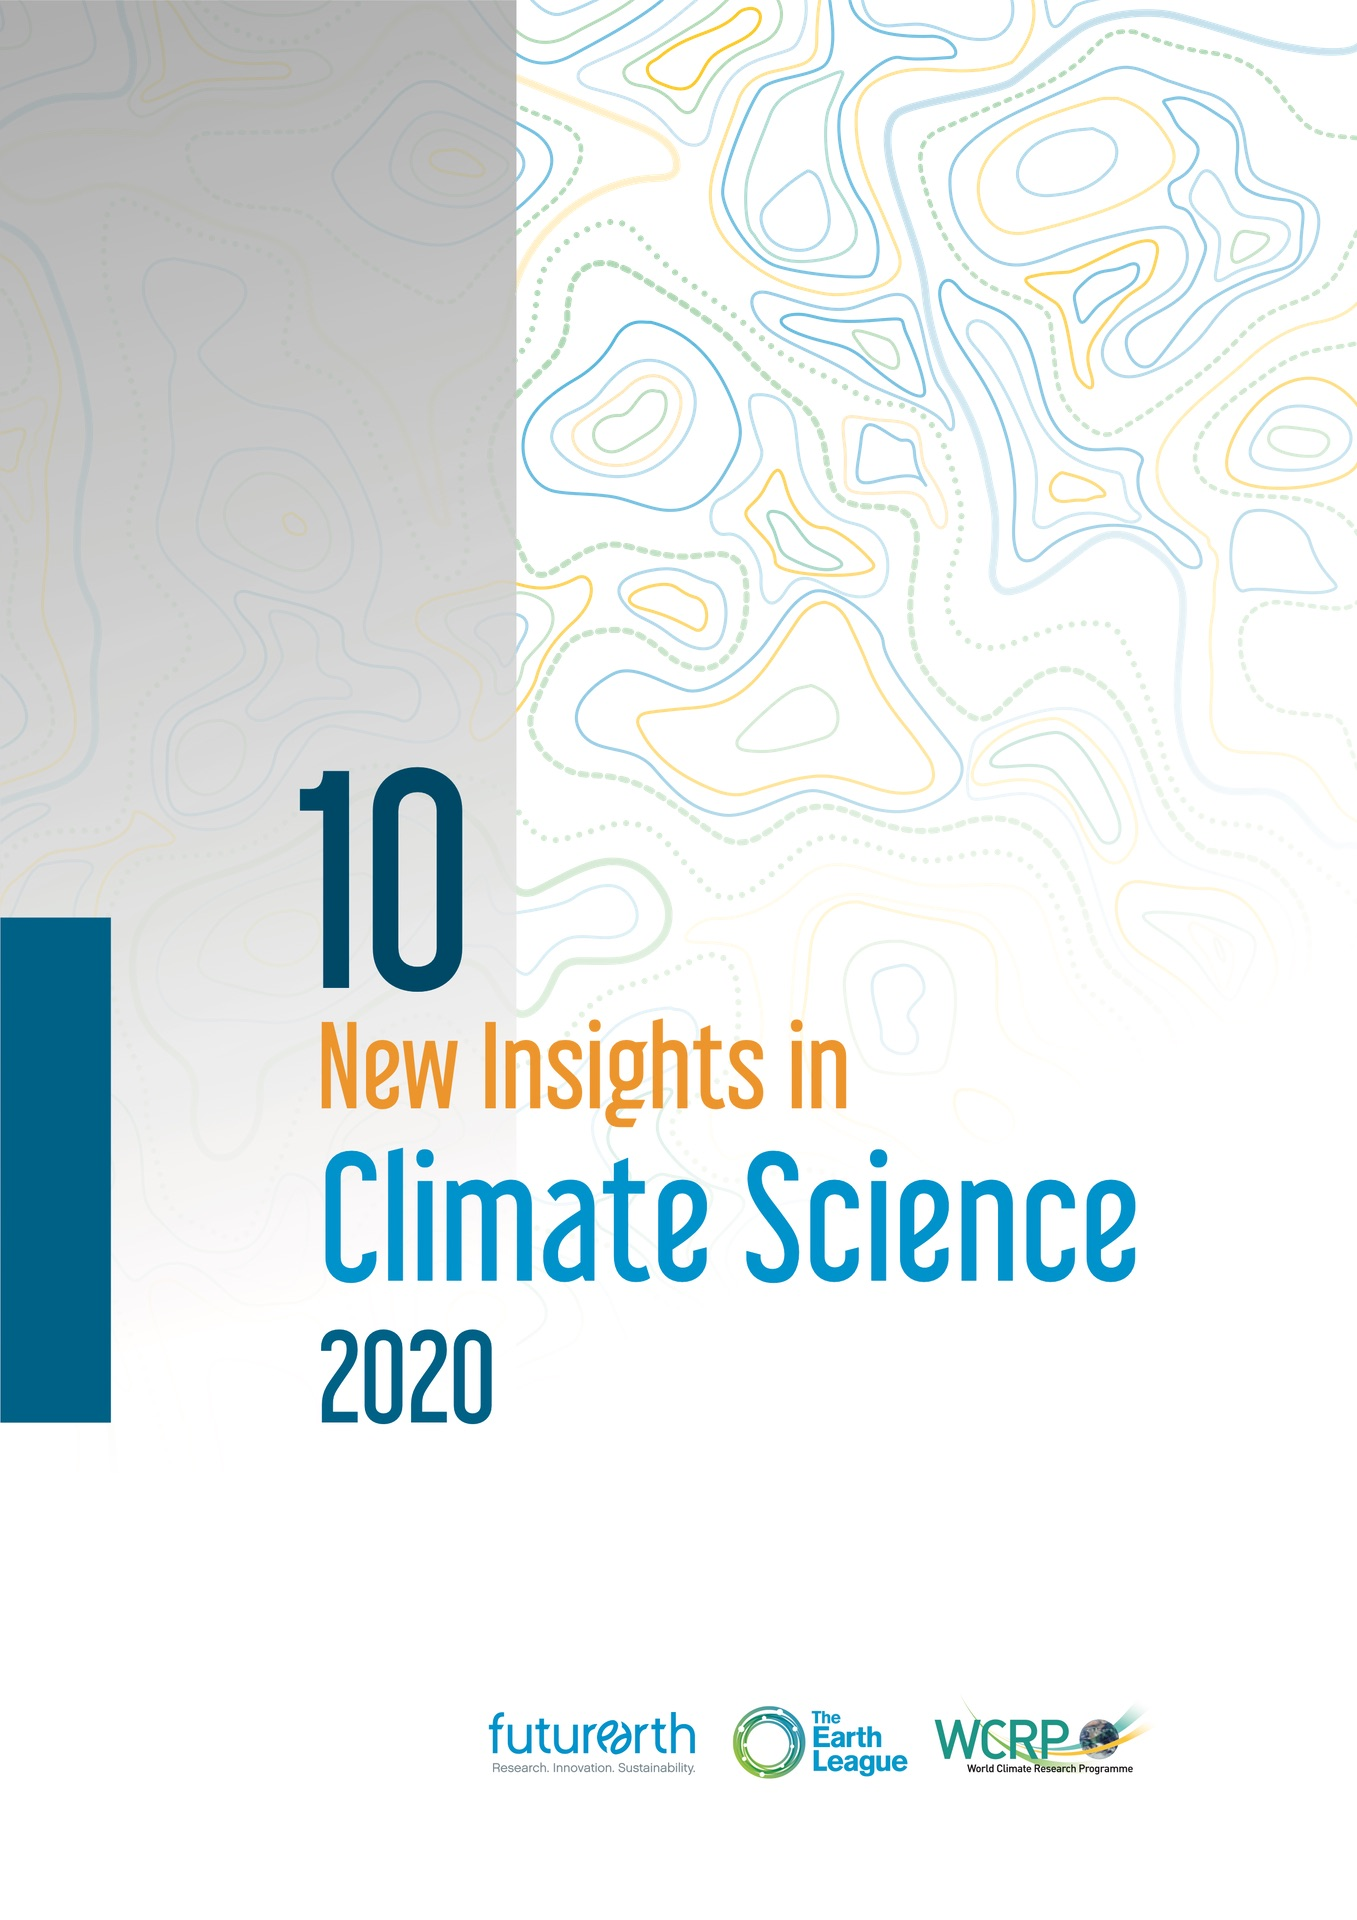 thefuture, 10-new-insights-in-climate-science